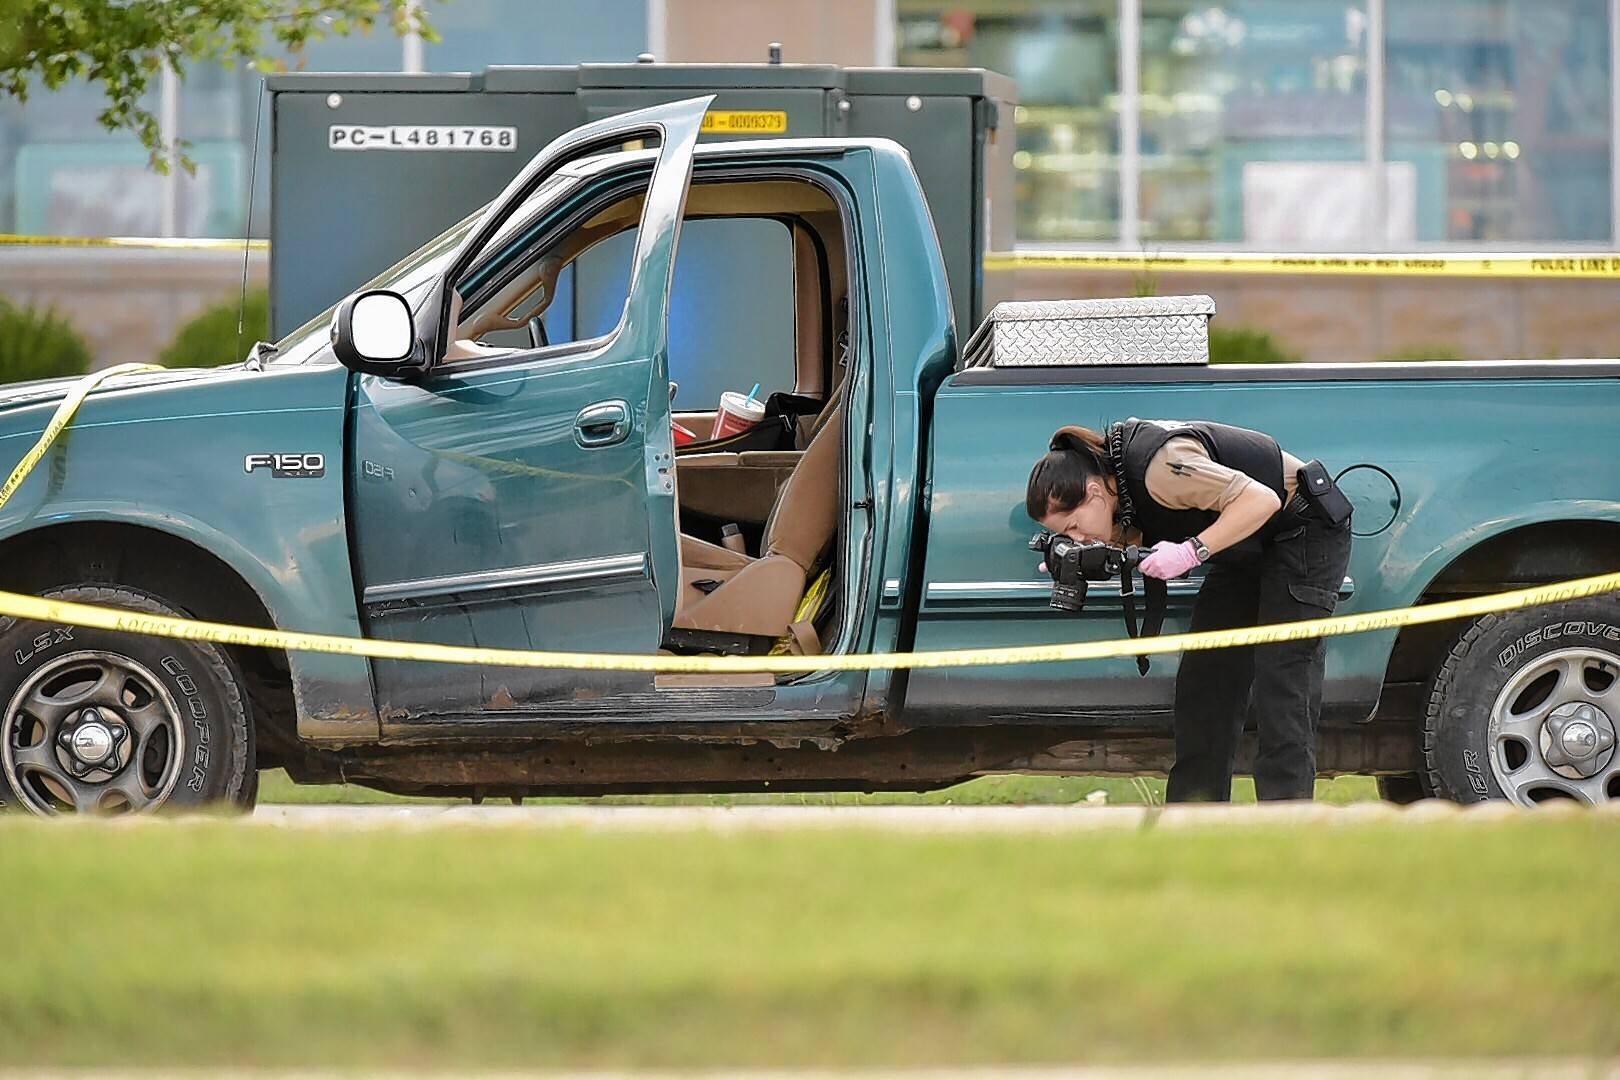 Investigators worked the scene of a shooting Monday at Roselle and Wise roads in Schaumburg.